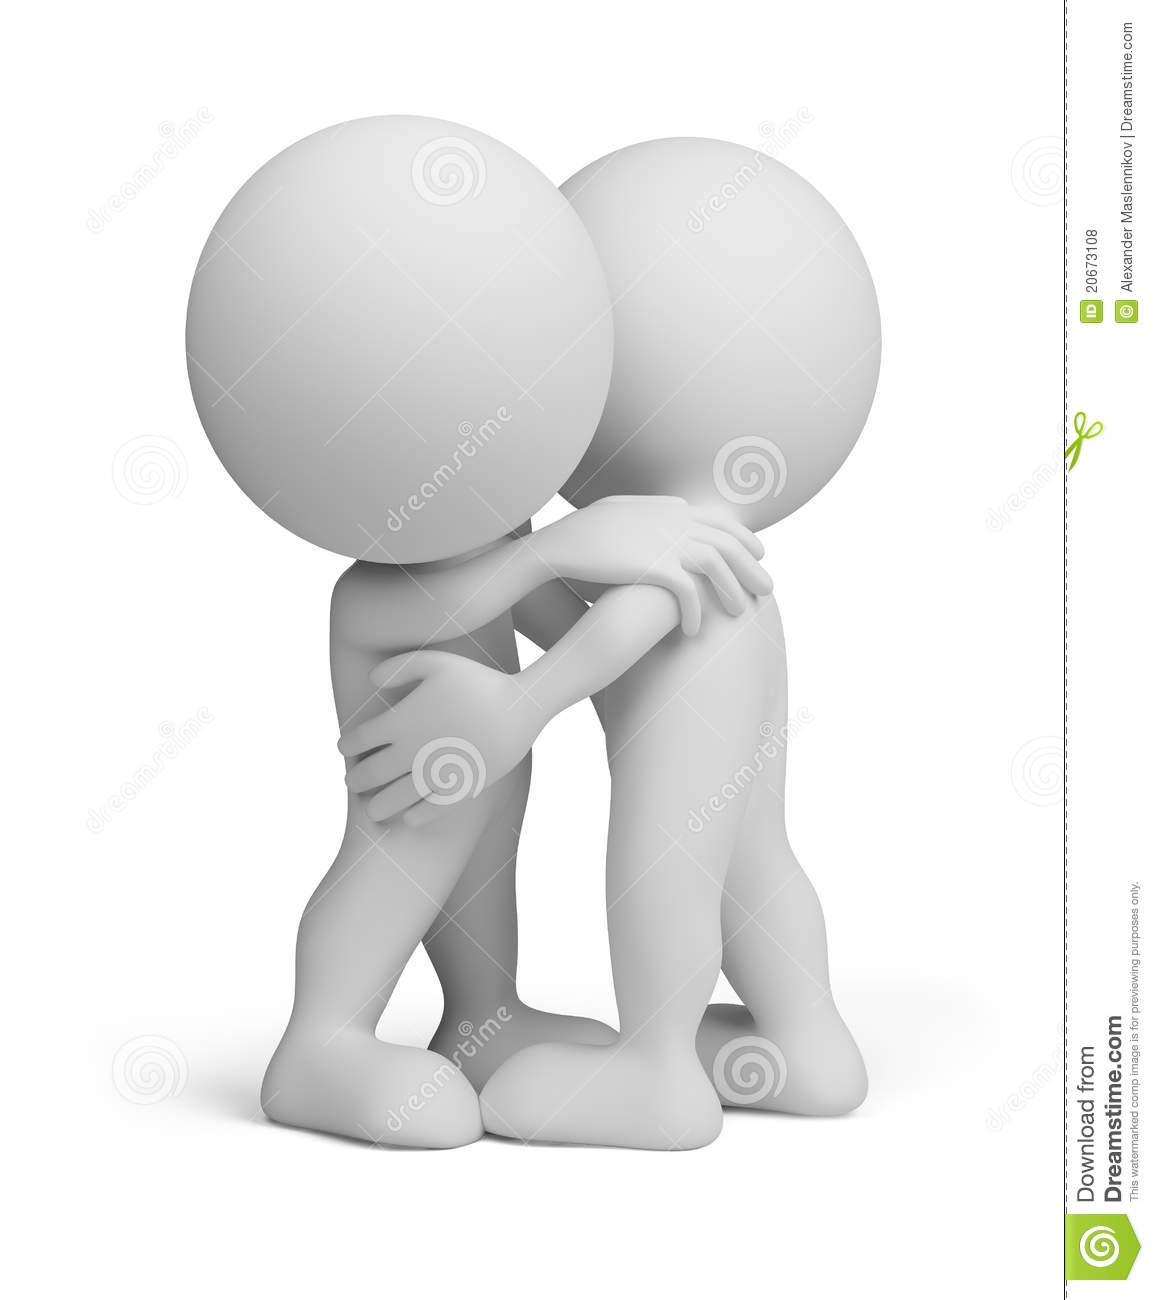 3d People Hugging Each Other  3d Image  Isolated White Background